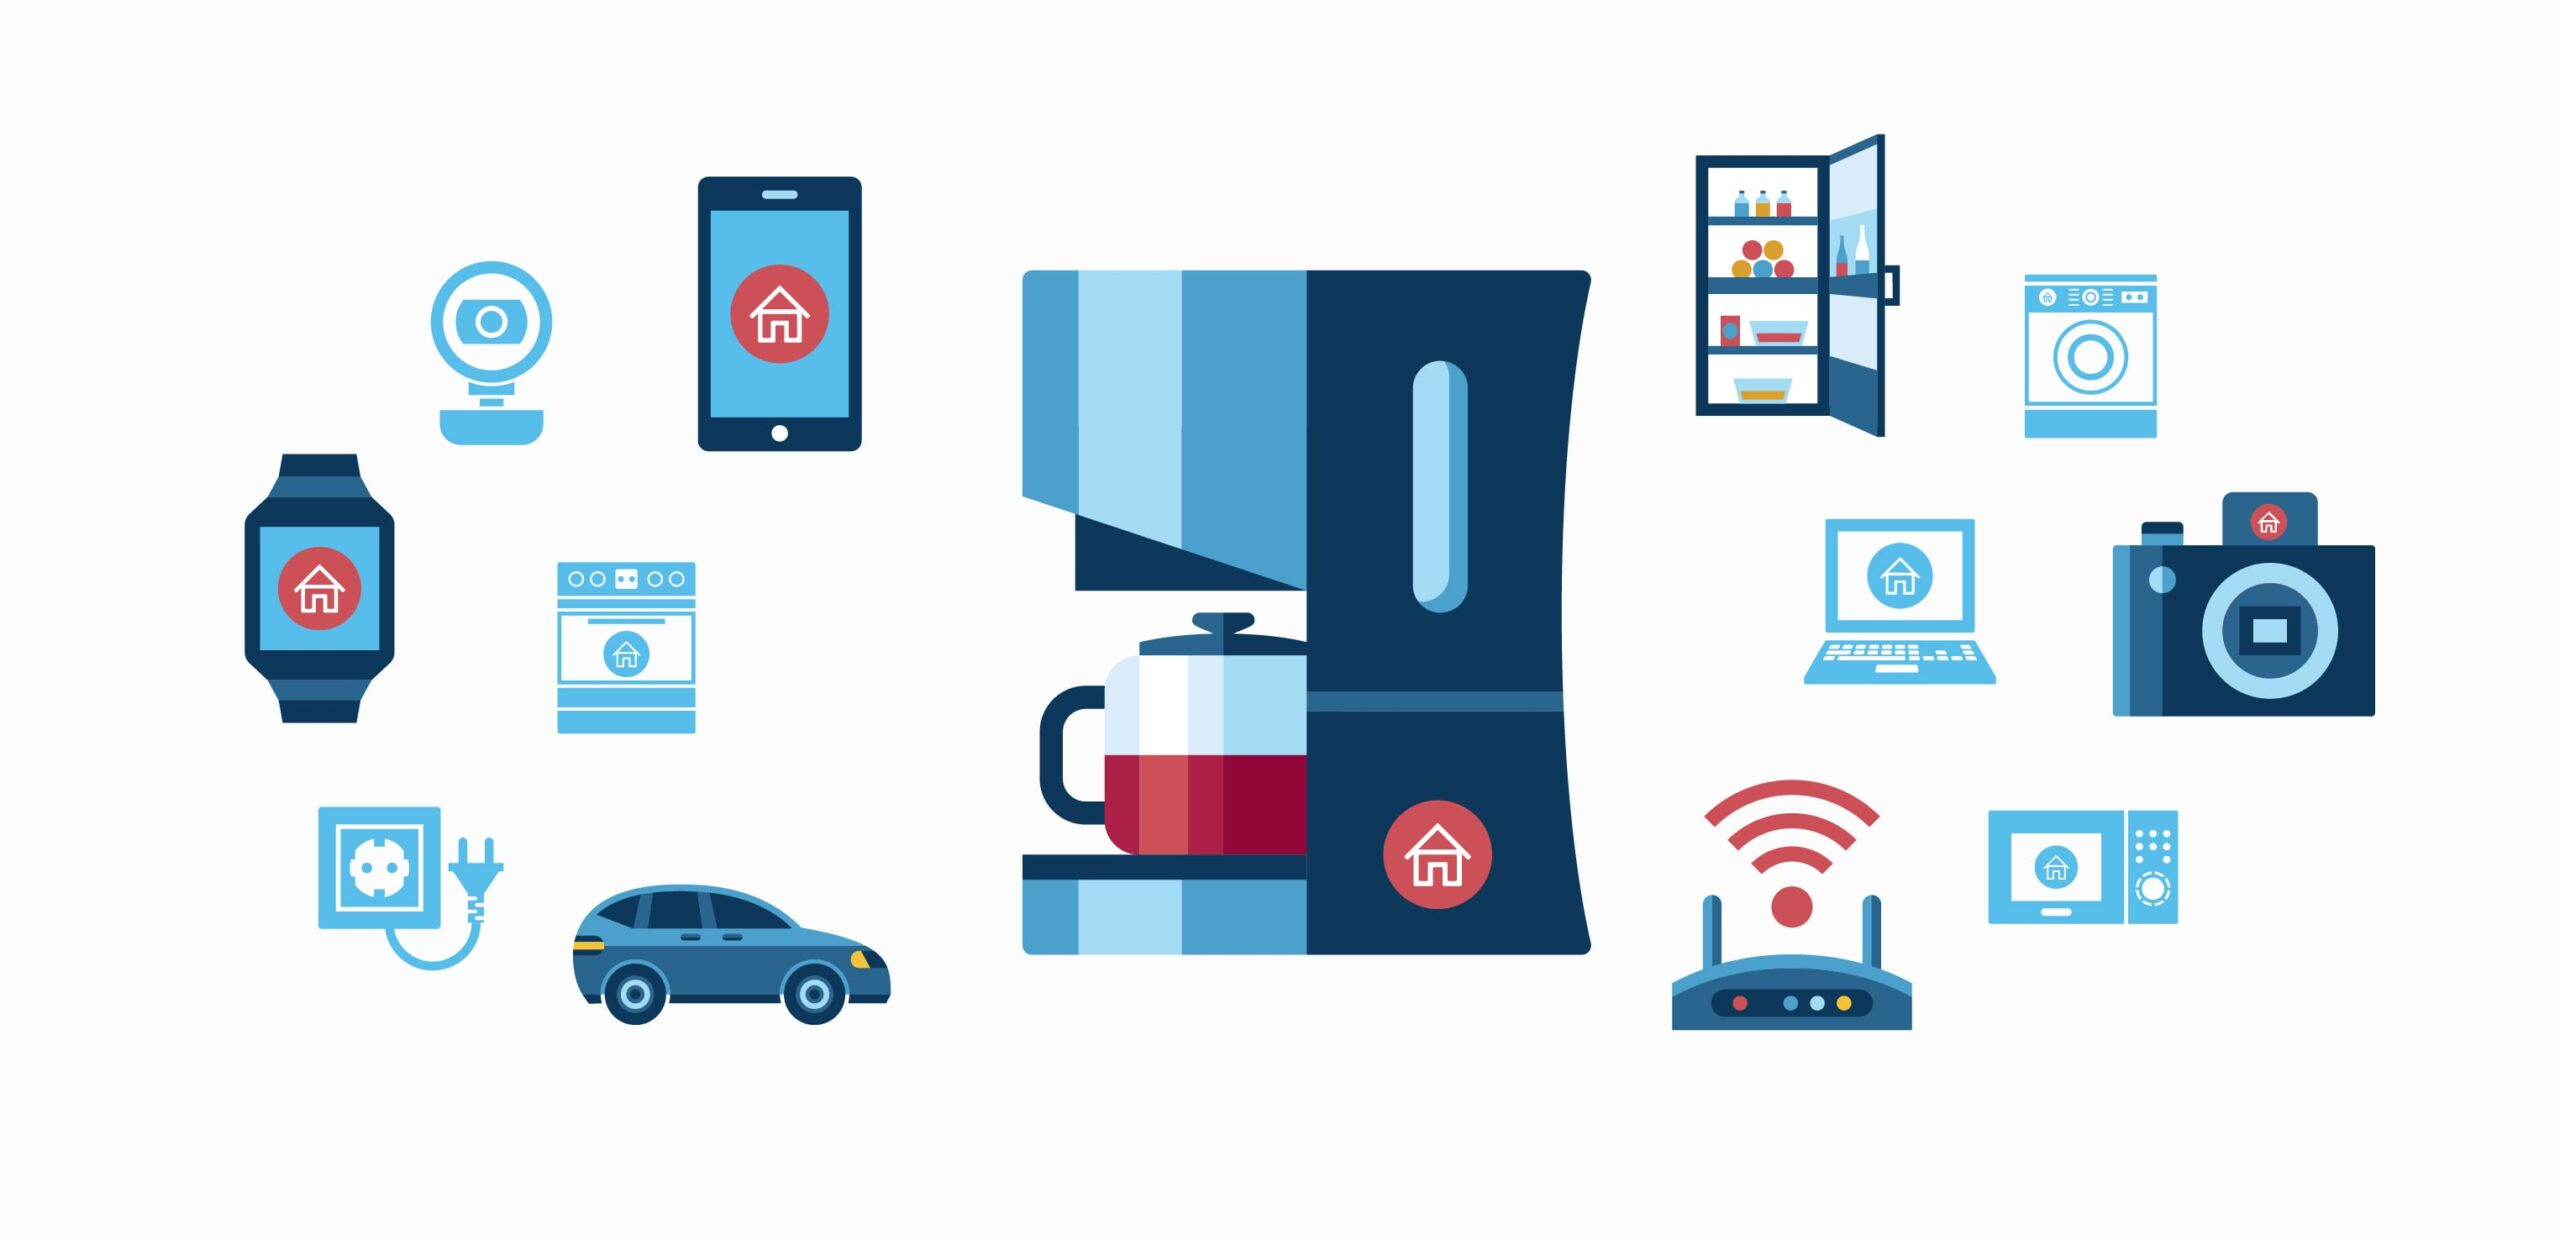 Consumer Internet of Things Illustrated Image